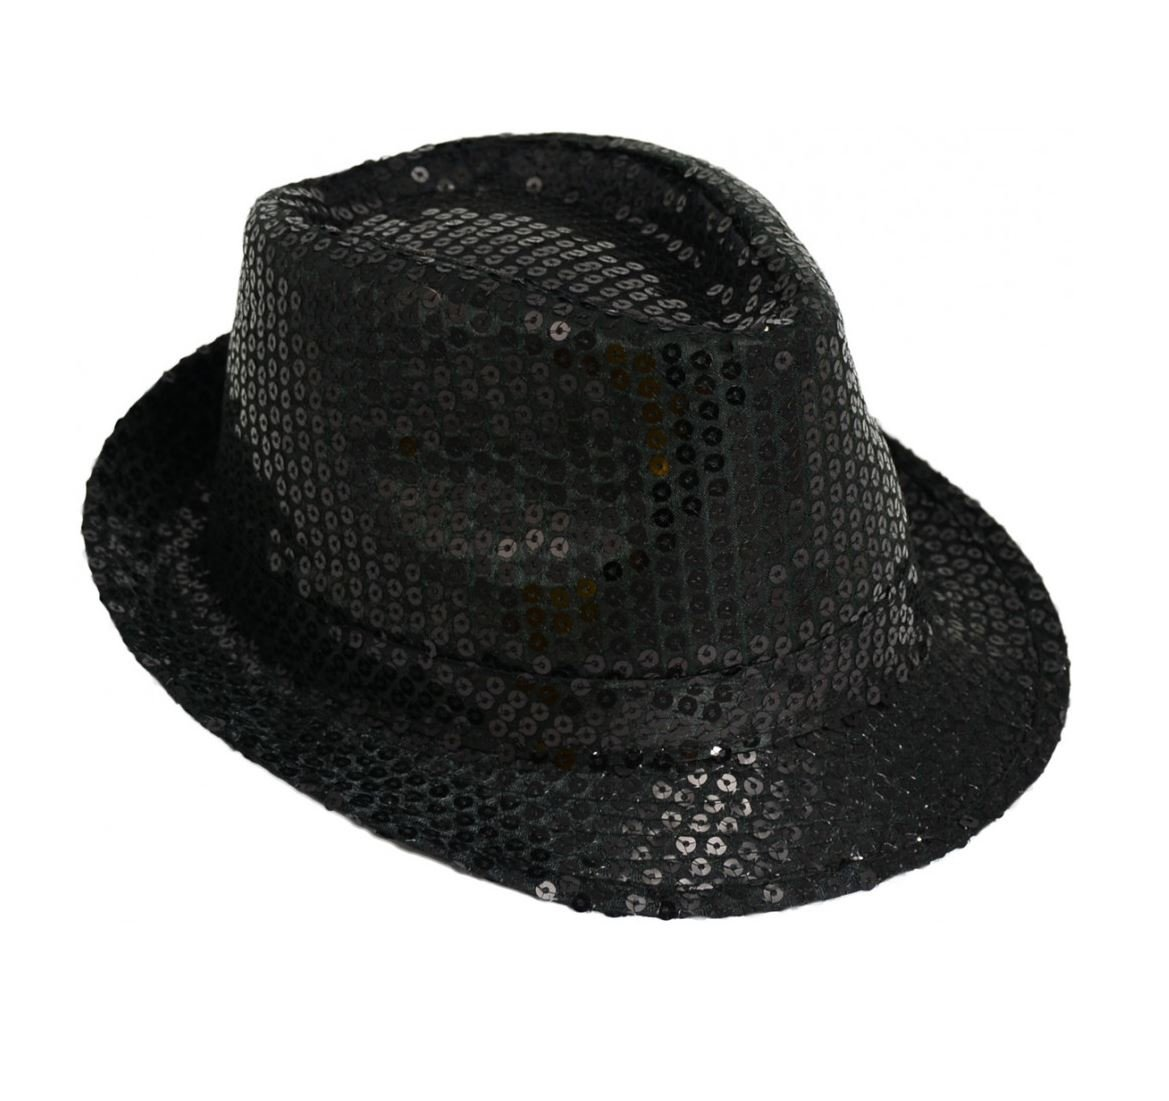 Michael Jackson Sequin Fancy Dress Fedora Trilby Hat  Amazon.co.uk  Toys    Games 7deeb31f6c88